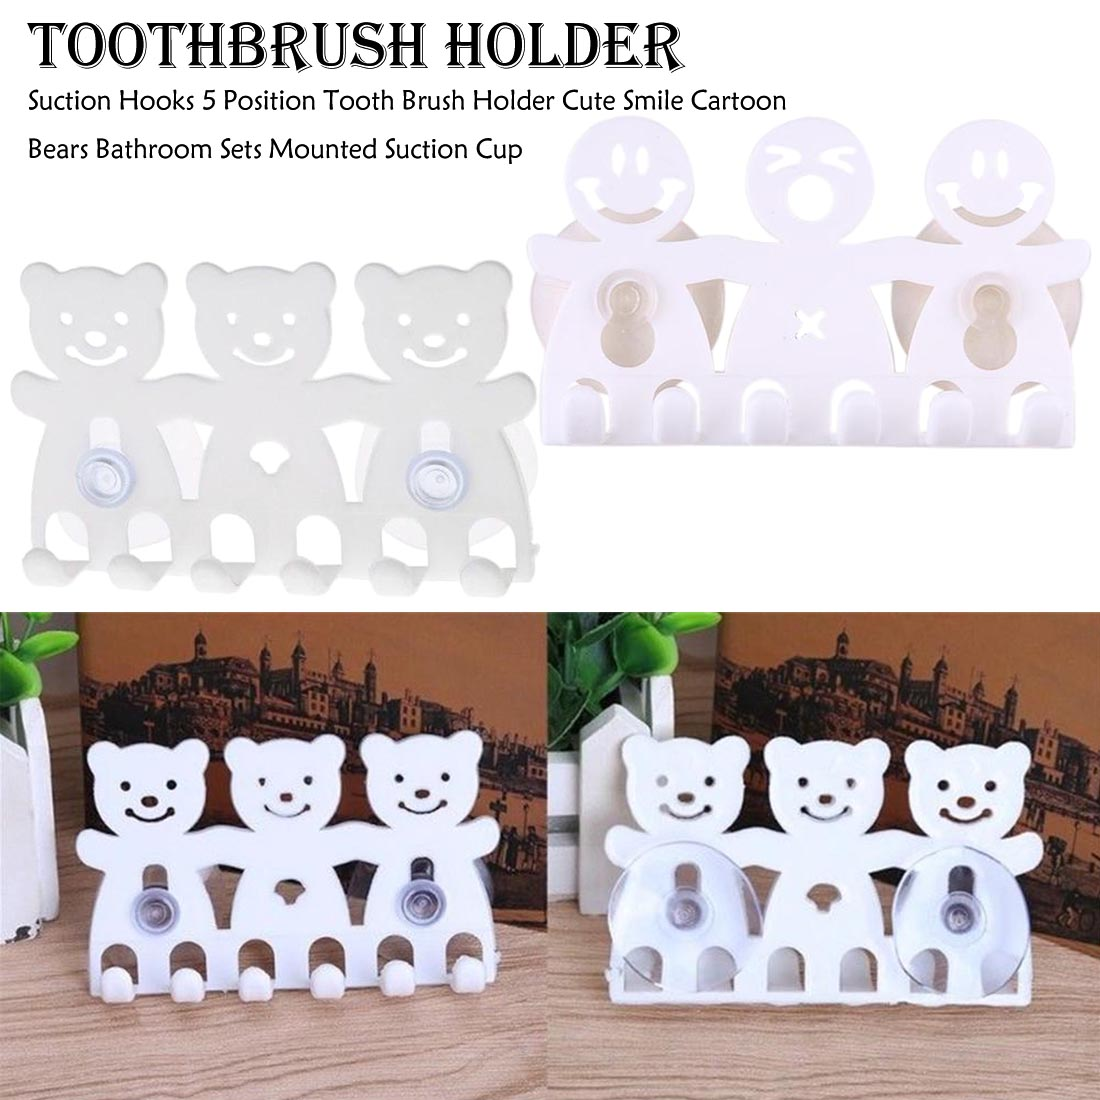 1Pc Toothbrush Holder Wall Mounted Suction Cup 5 Position Cute Cartoon Bathroom Sets Smile Cartoon Bears Bathroom Sets Mou image